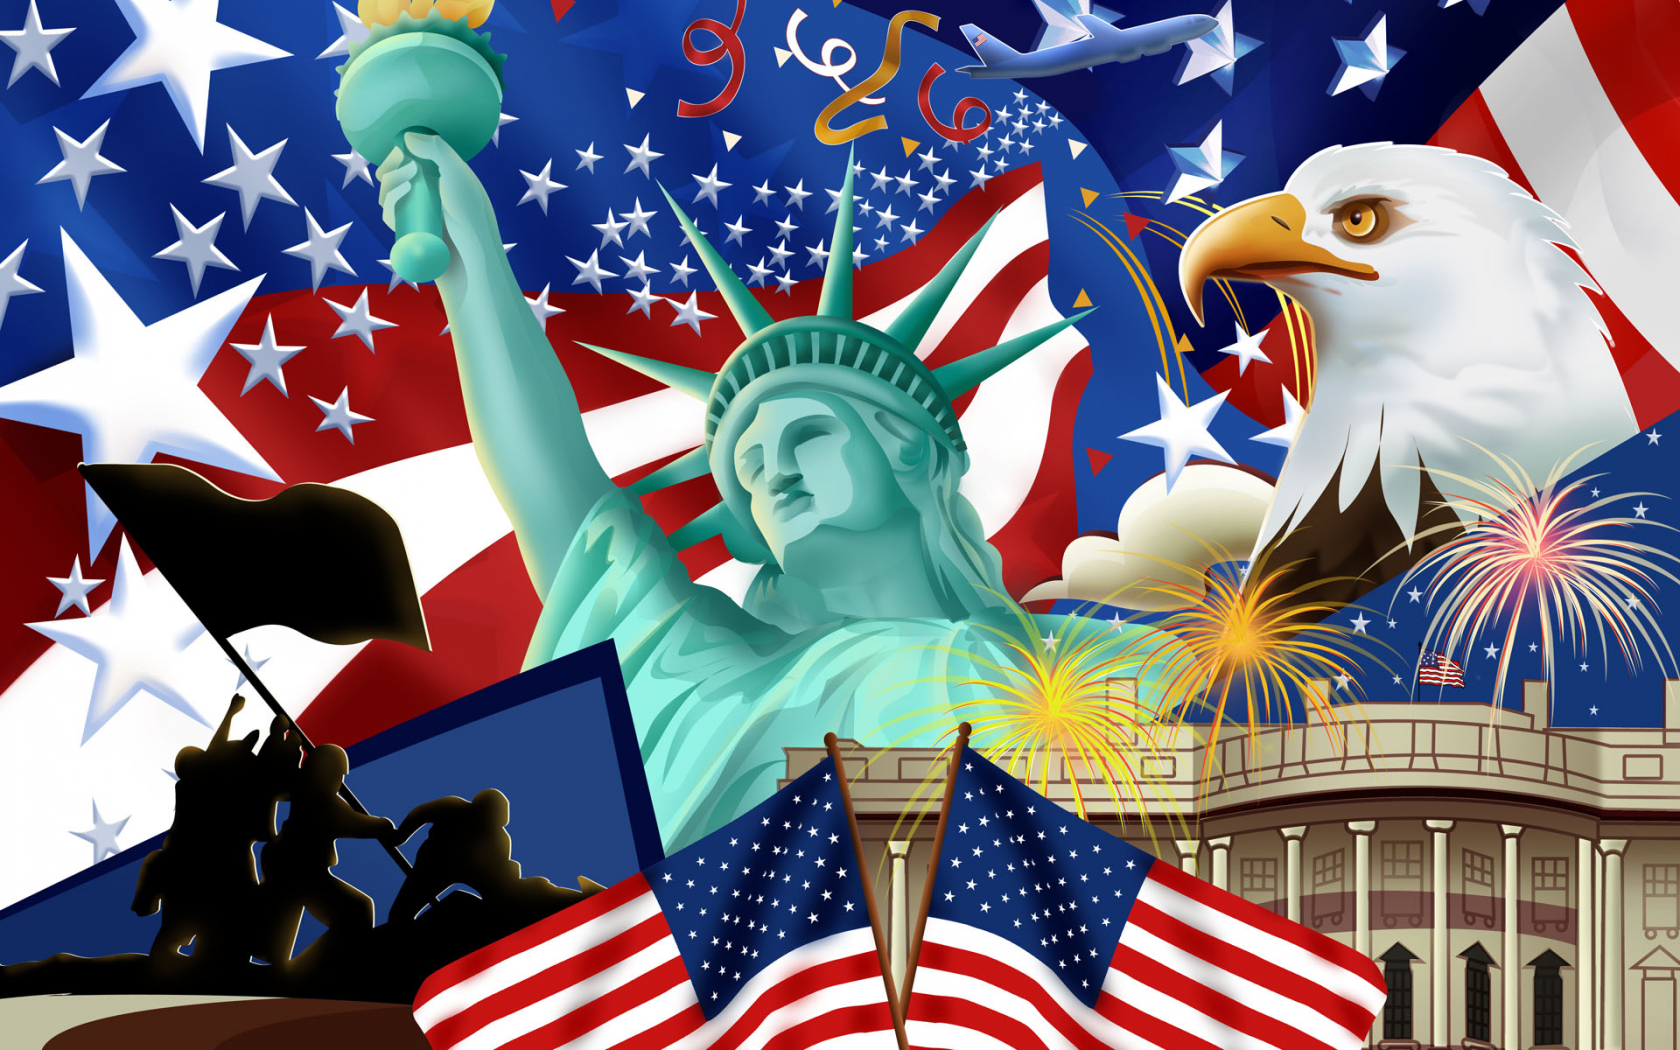 Free Download United States Of America Images Independence Day Hd